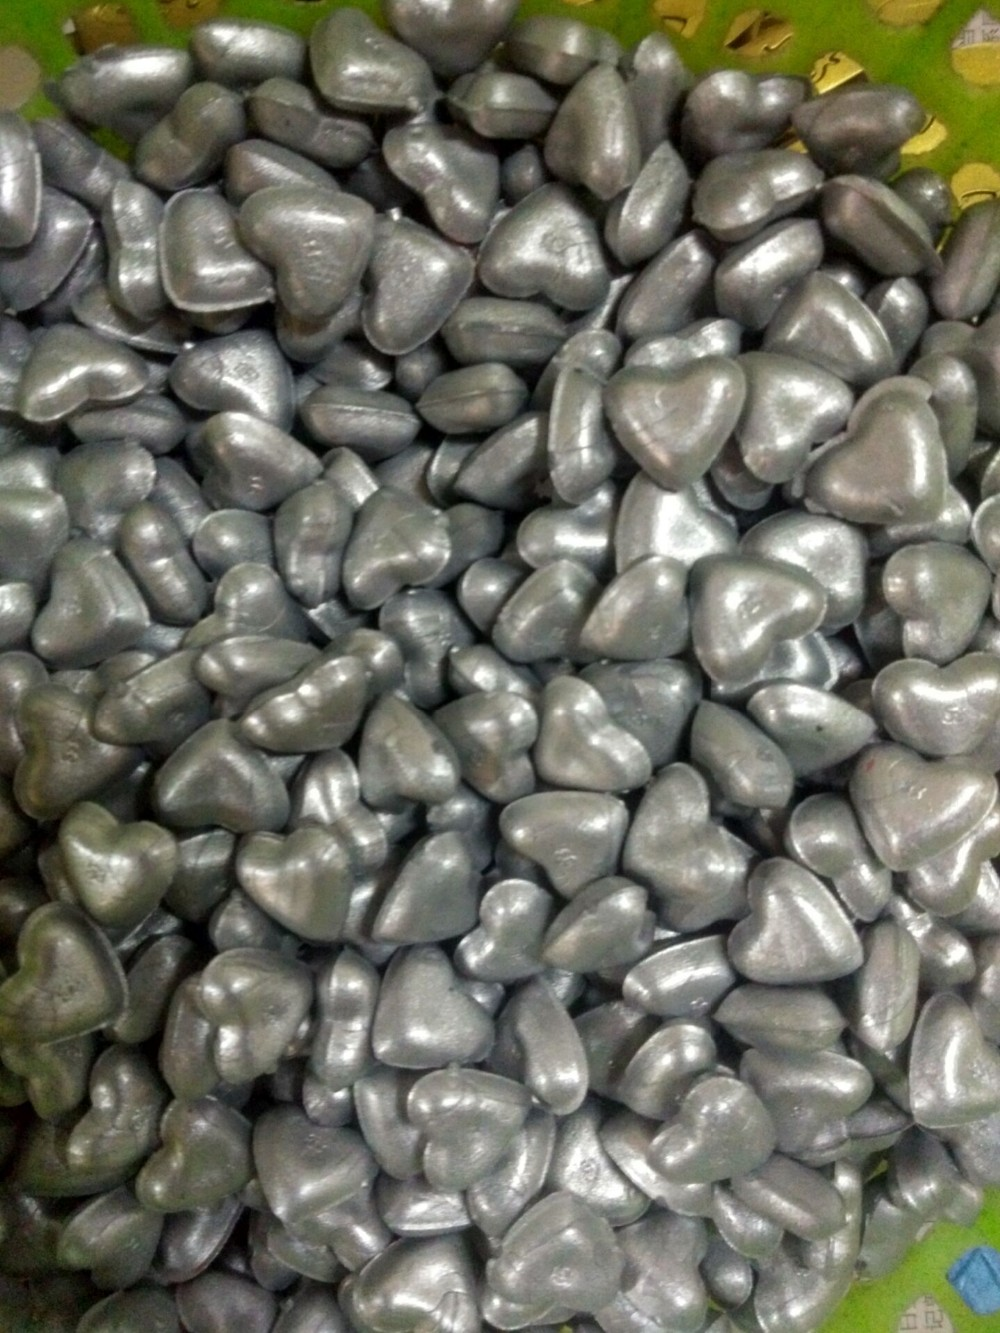 hearted shape wax beads for wedding invitations